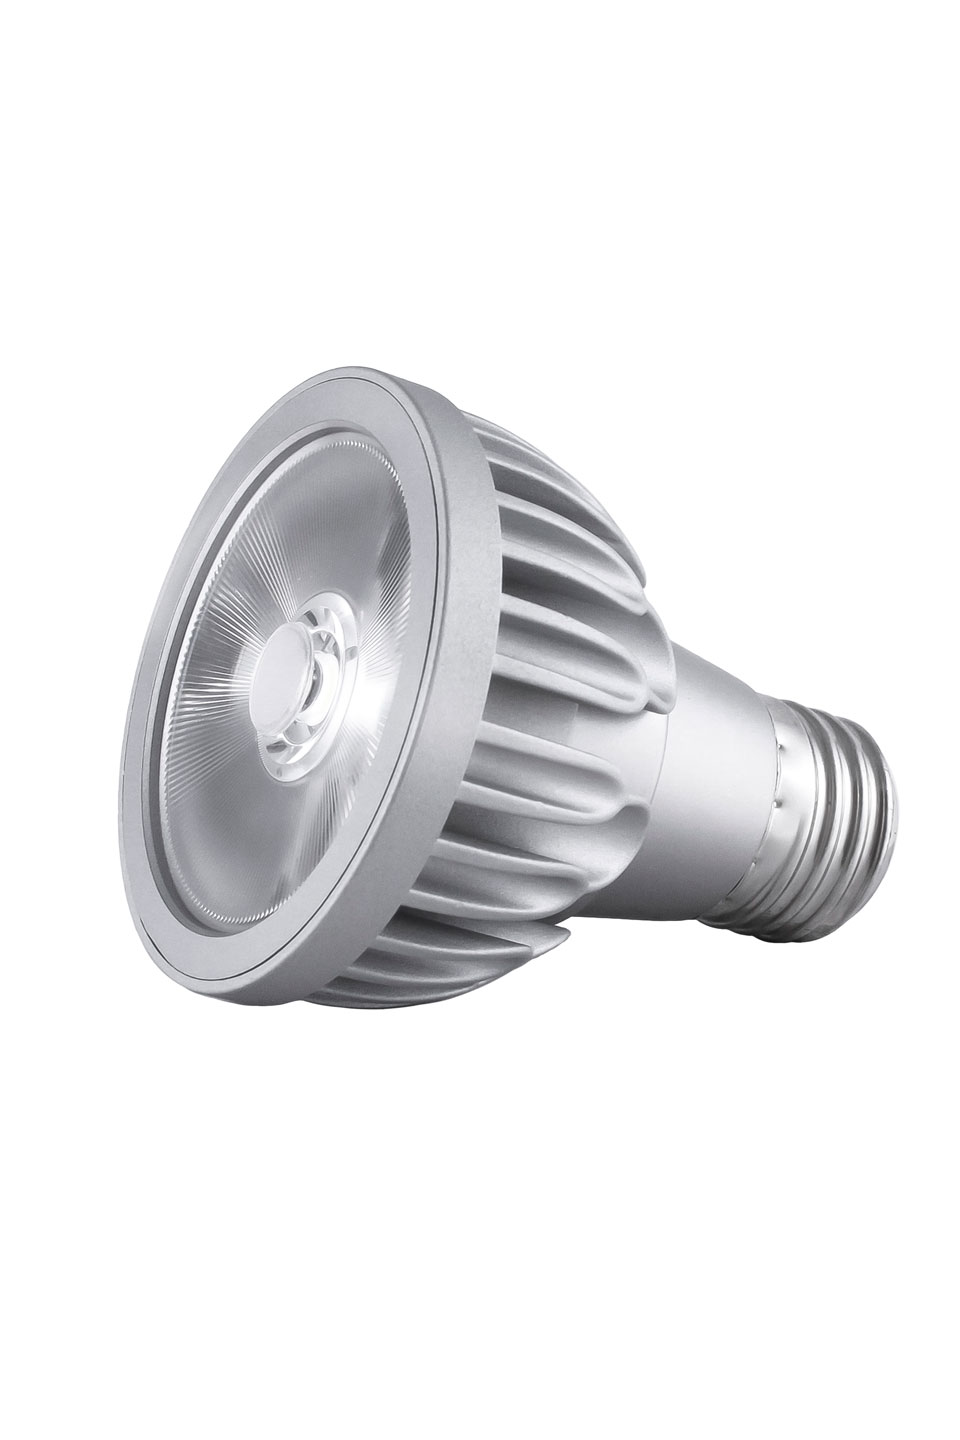 Dimmbare Led Spots Available In 10 25 And 36 Cri 95 540lm 230v